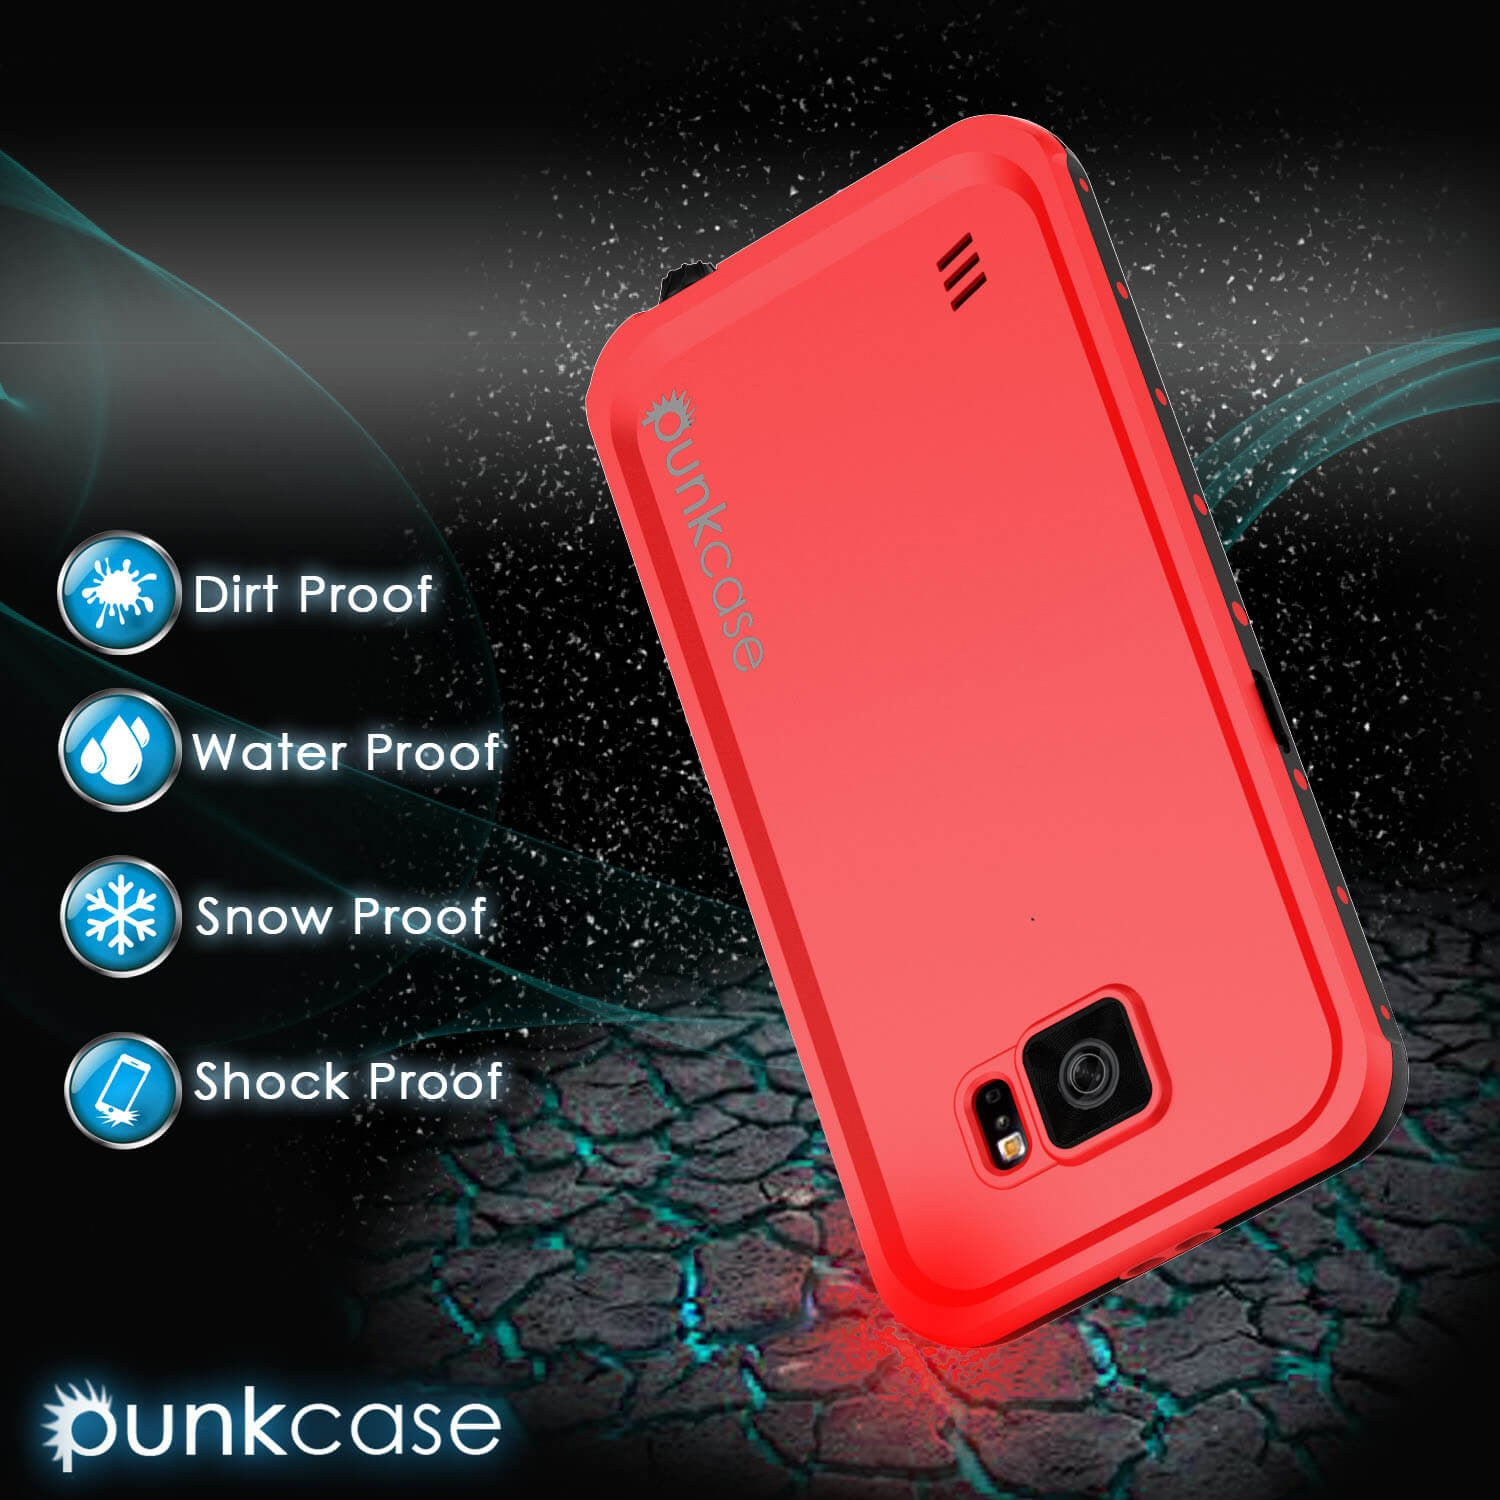 Galaxy S6 Waterproof Case PunkCase StudStar Red Thin 6.6ft Underwater IP68 Shock/Dirt/Snow Proof